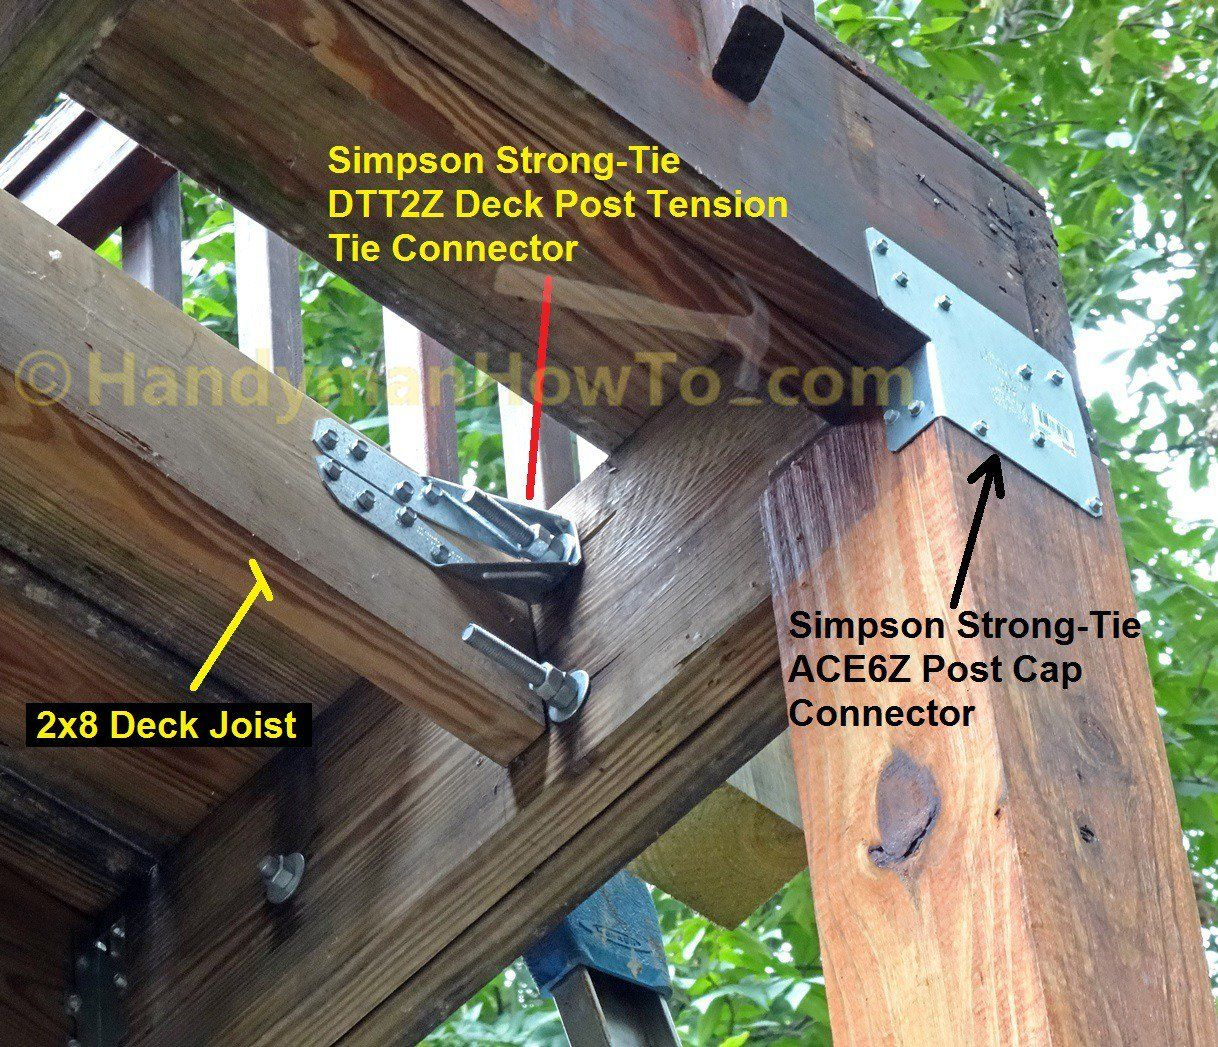 Build Deck Rail Simpson Strong Tie Dtt2z Deck Post Connector 1 2 Inch Bolts And Washers Deck Posts Deck Railings Building A Deck